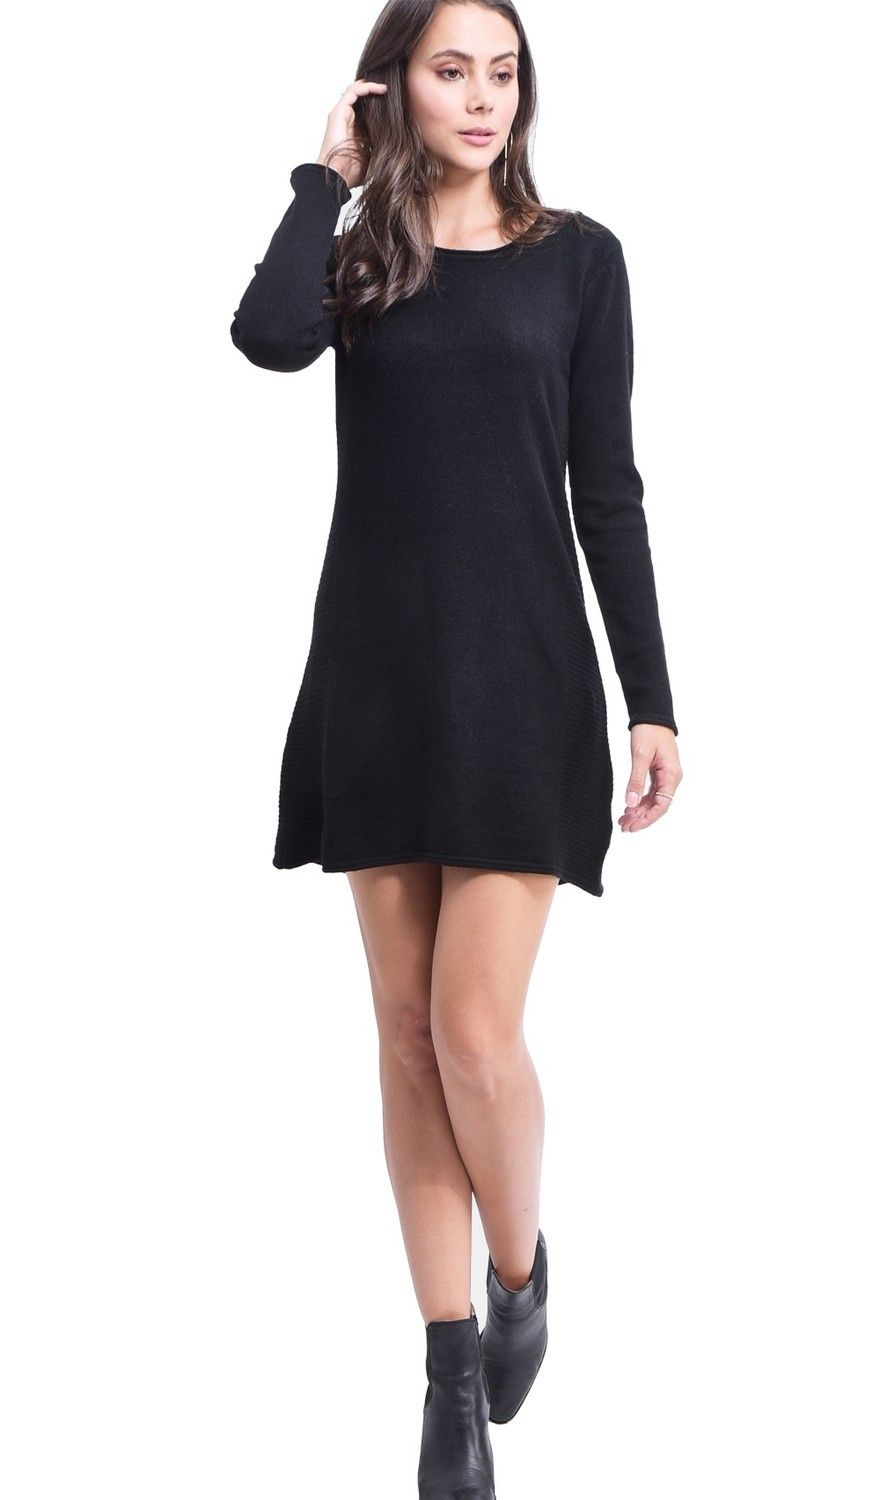 Assuili Round Neck Ribbed Side Tunic in Black